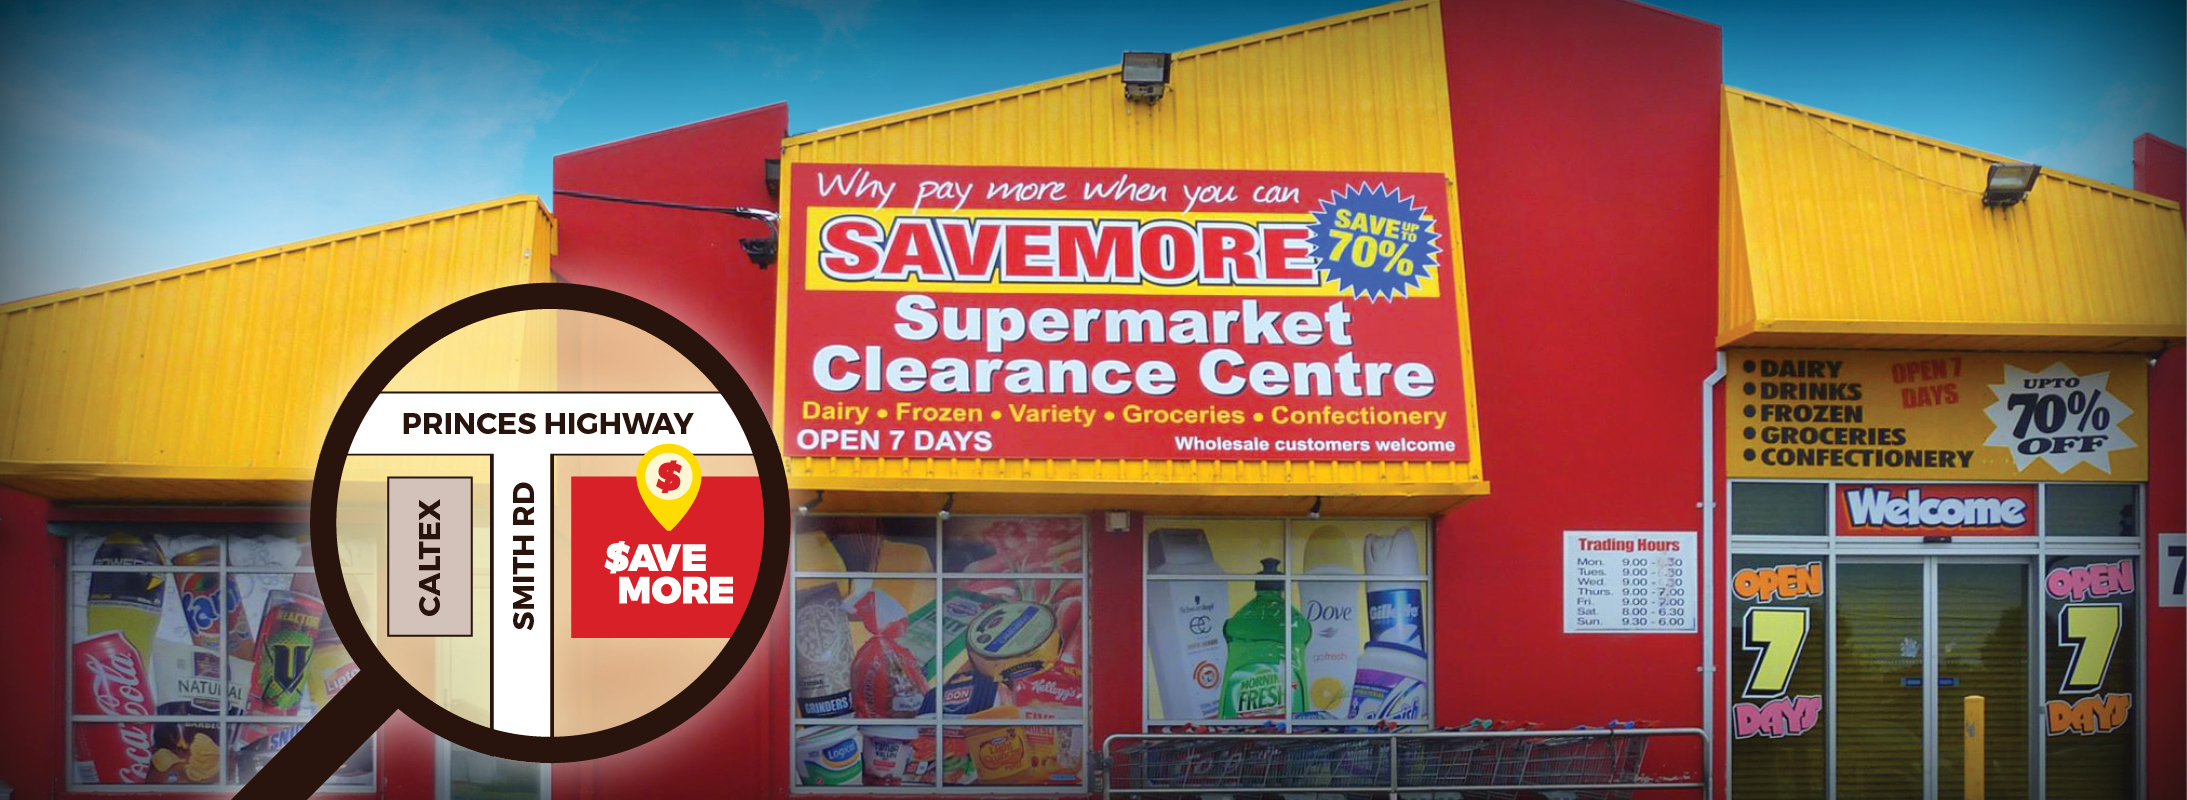 Savemore Supermarket Clearance Centre | Visit us